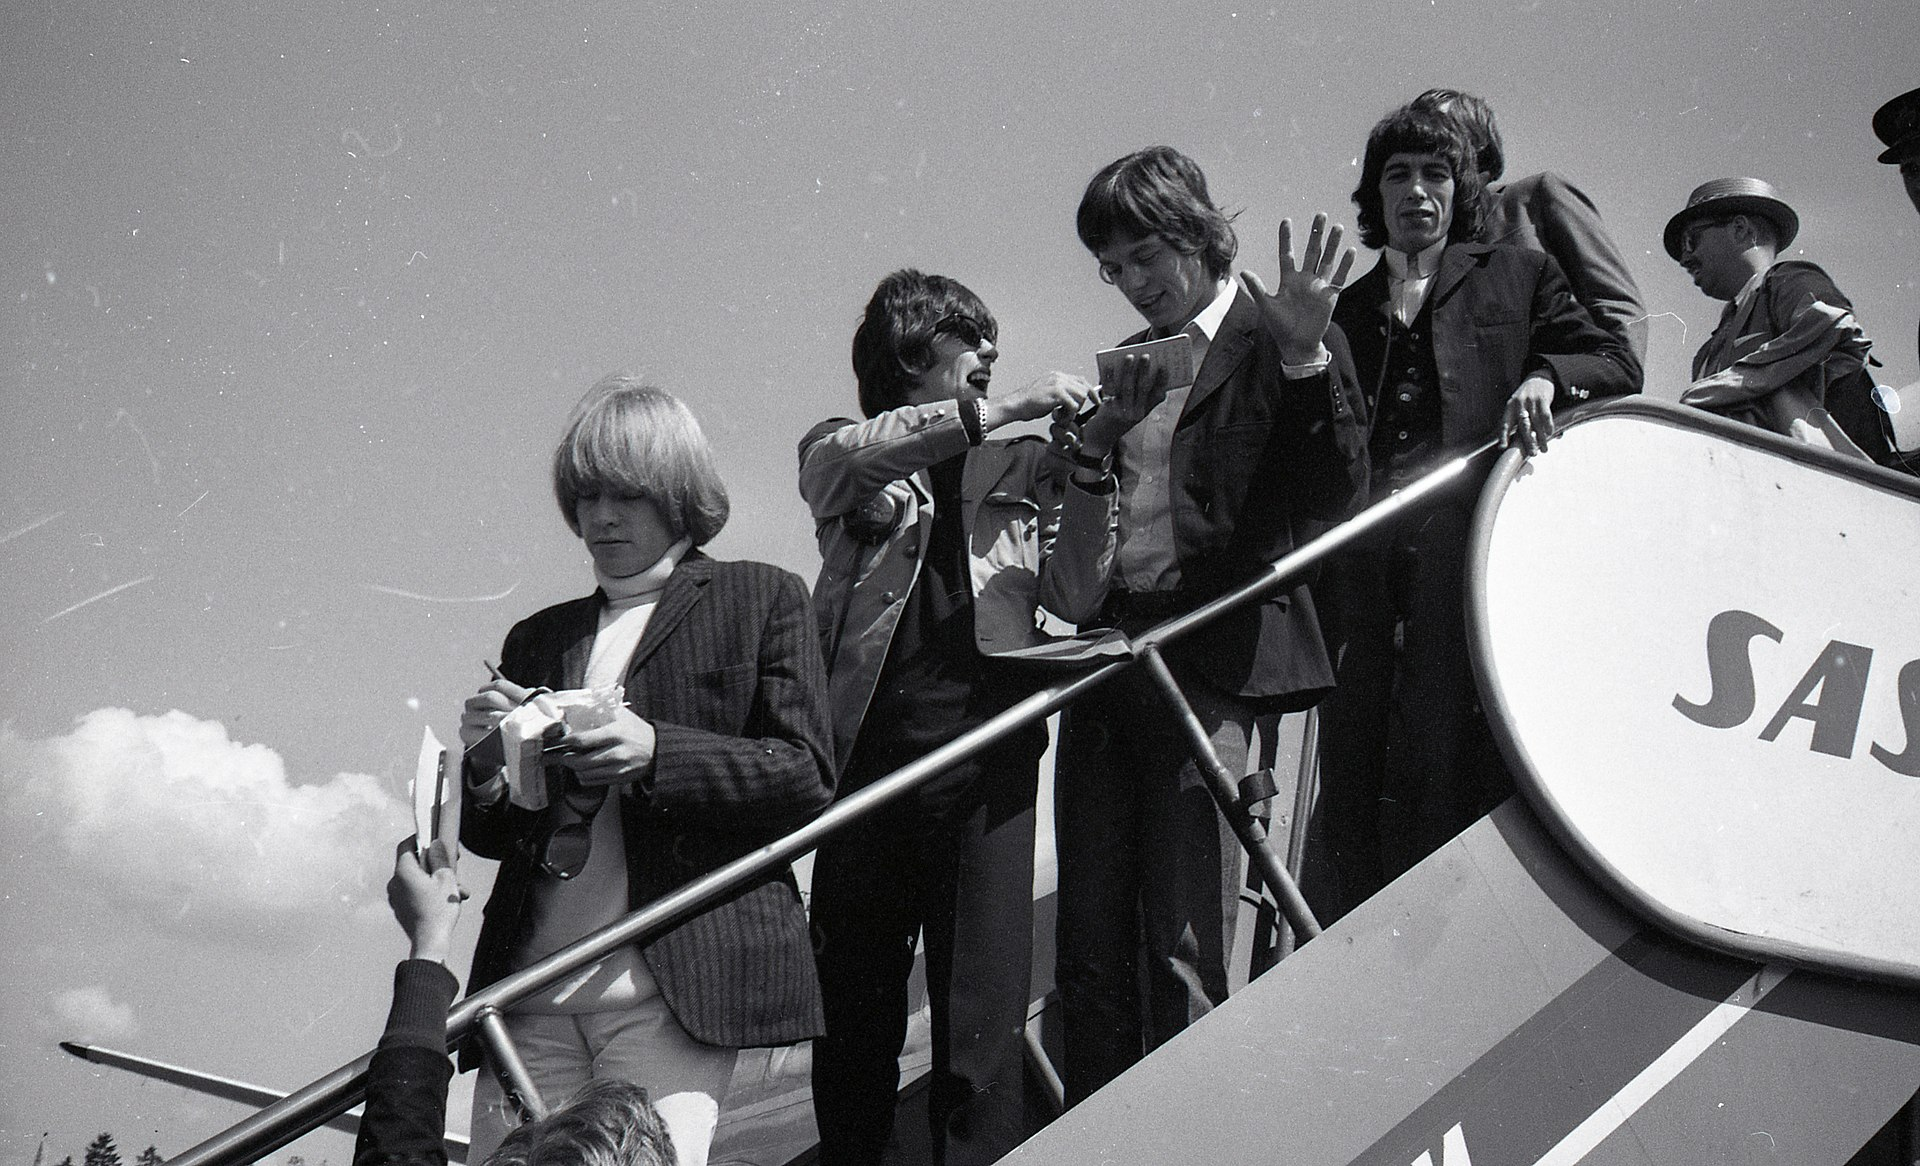 "in   #onthisday #otd #history #TheRollingStones<img src=""img/htl.jpg"" alt=""Logo"" style=""width:50px;height:30px;"">"